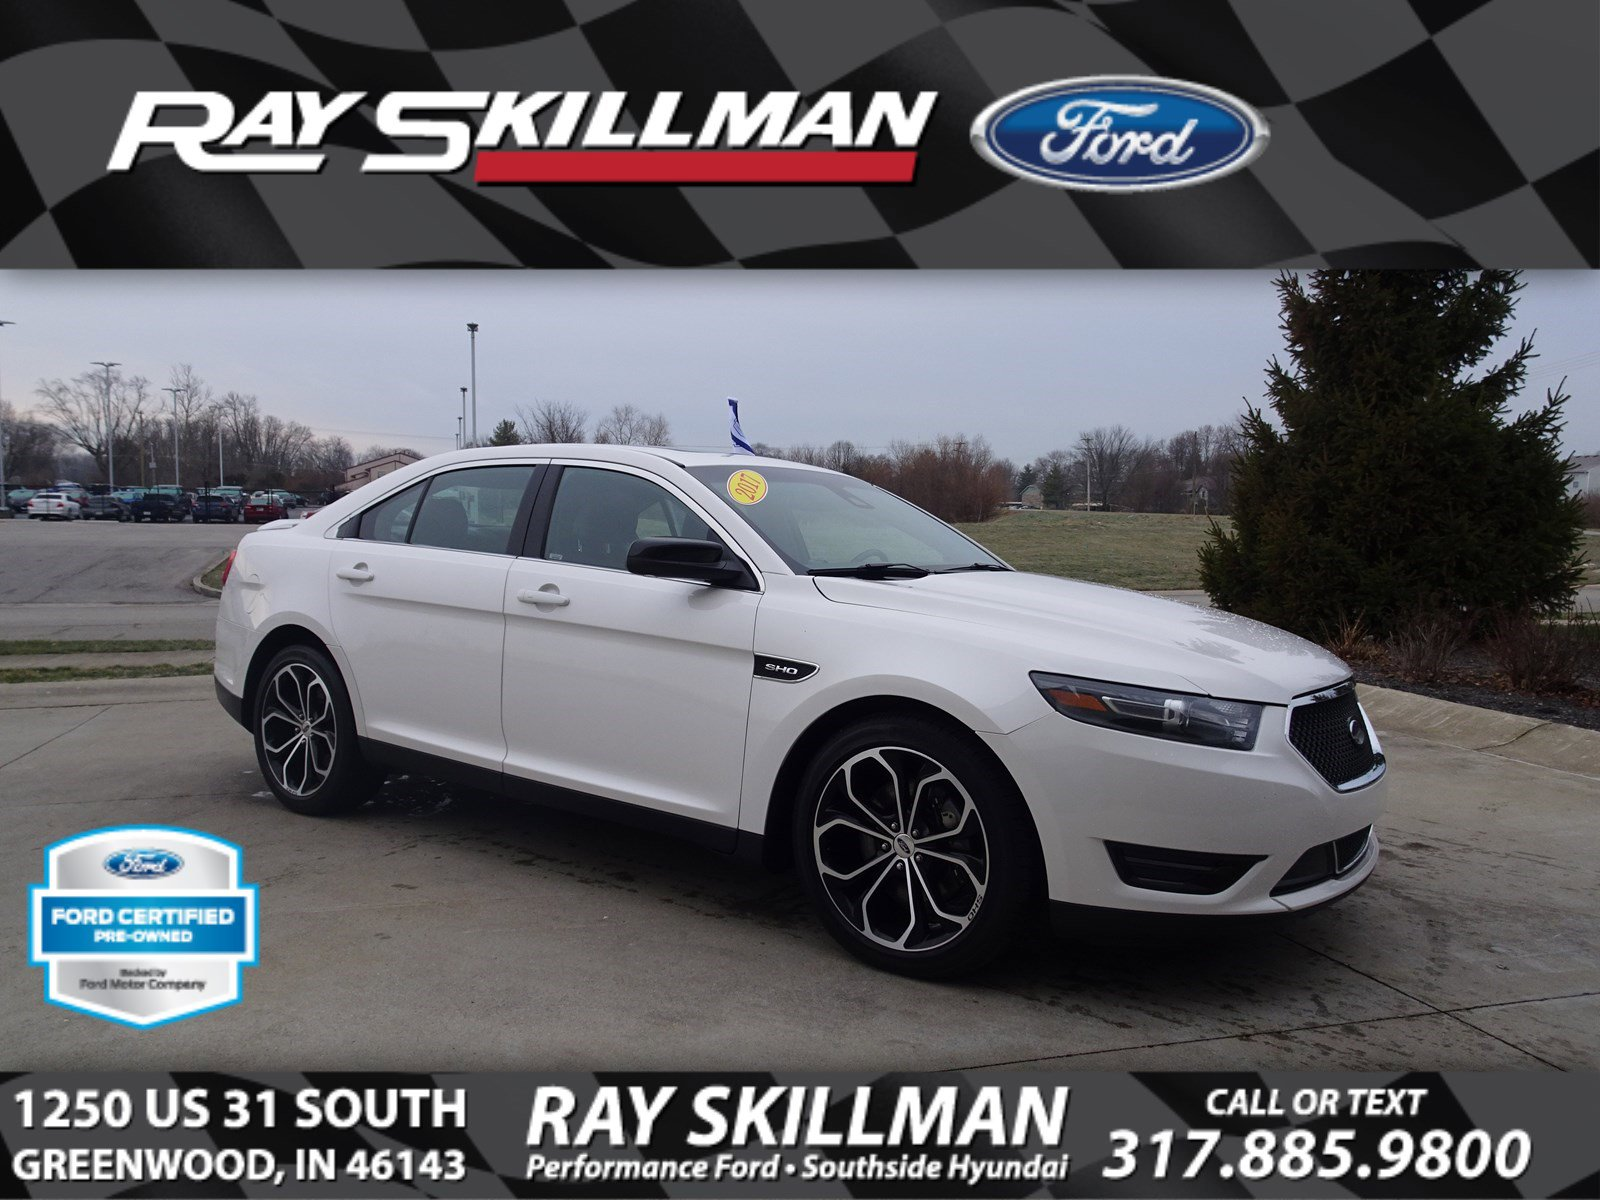 Certified Pre-Owned 2017 Ford Taurus SHO